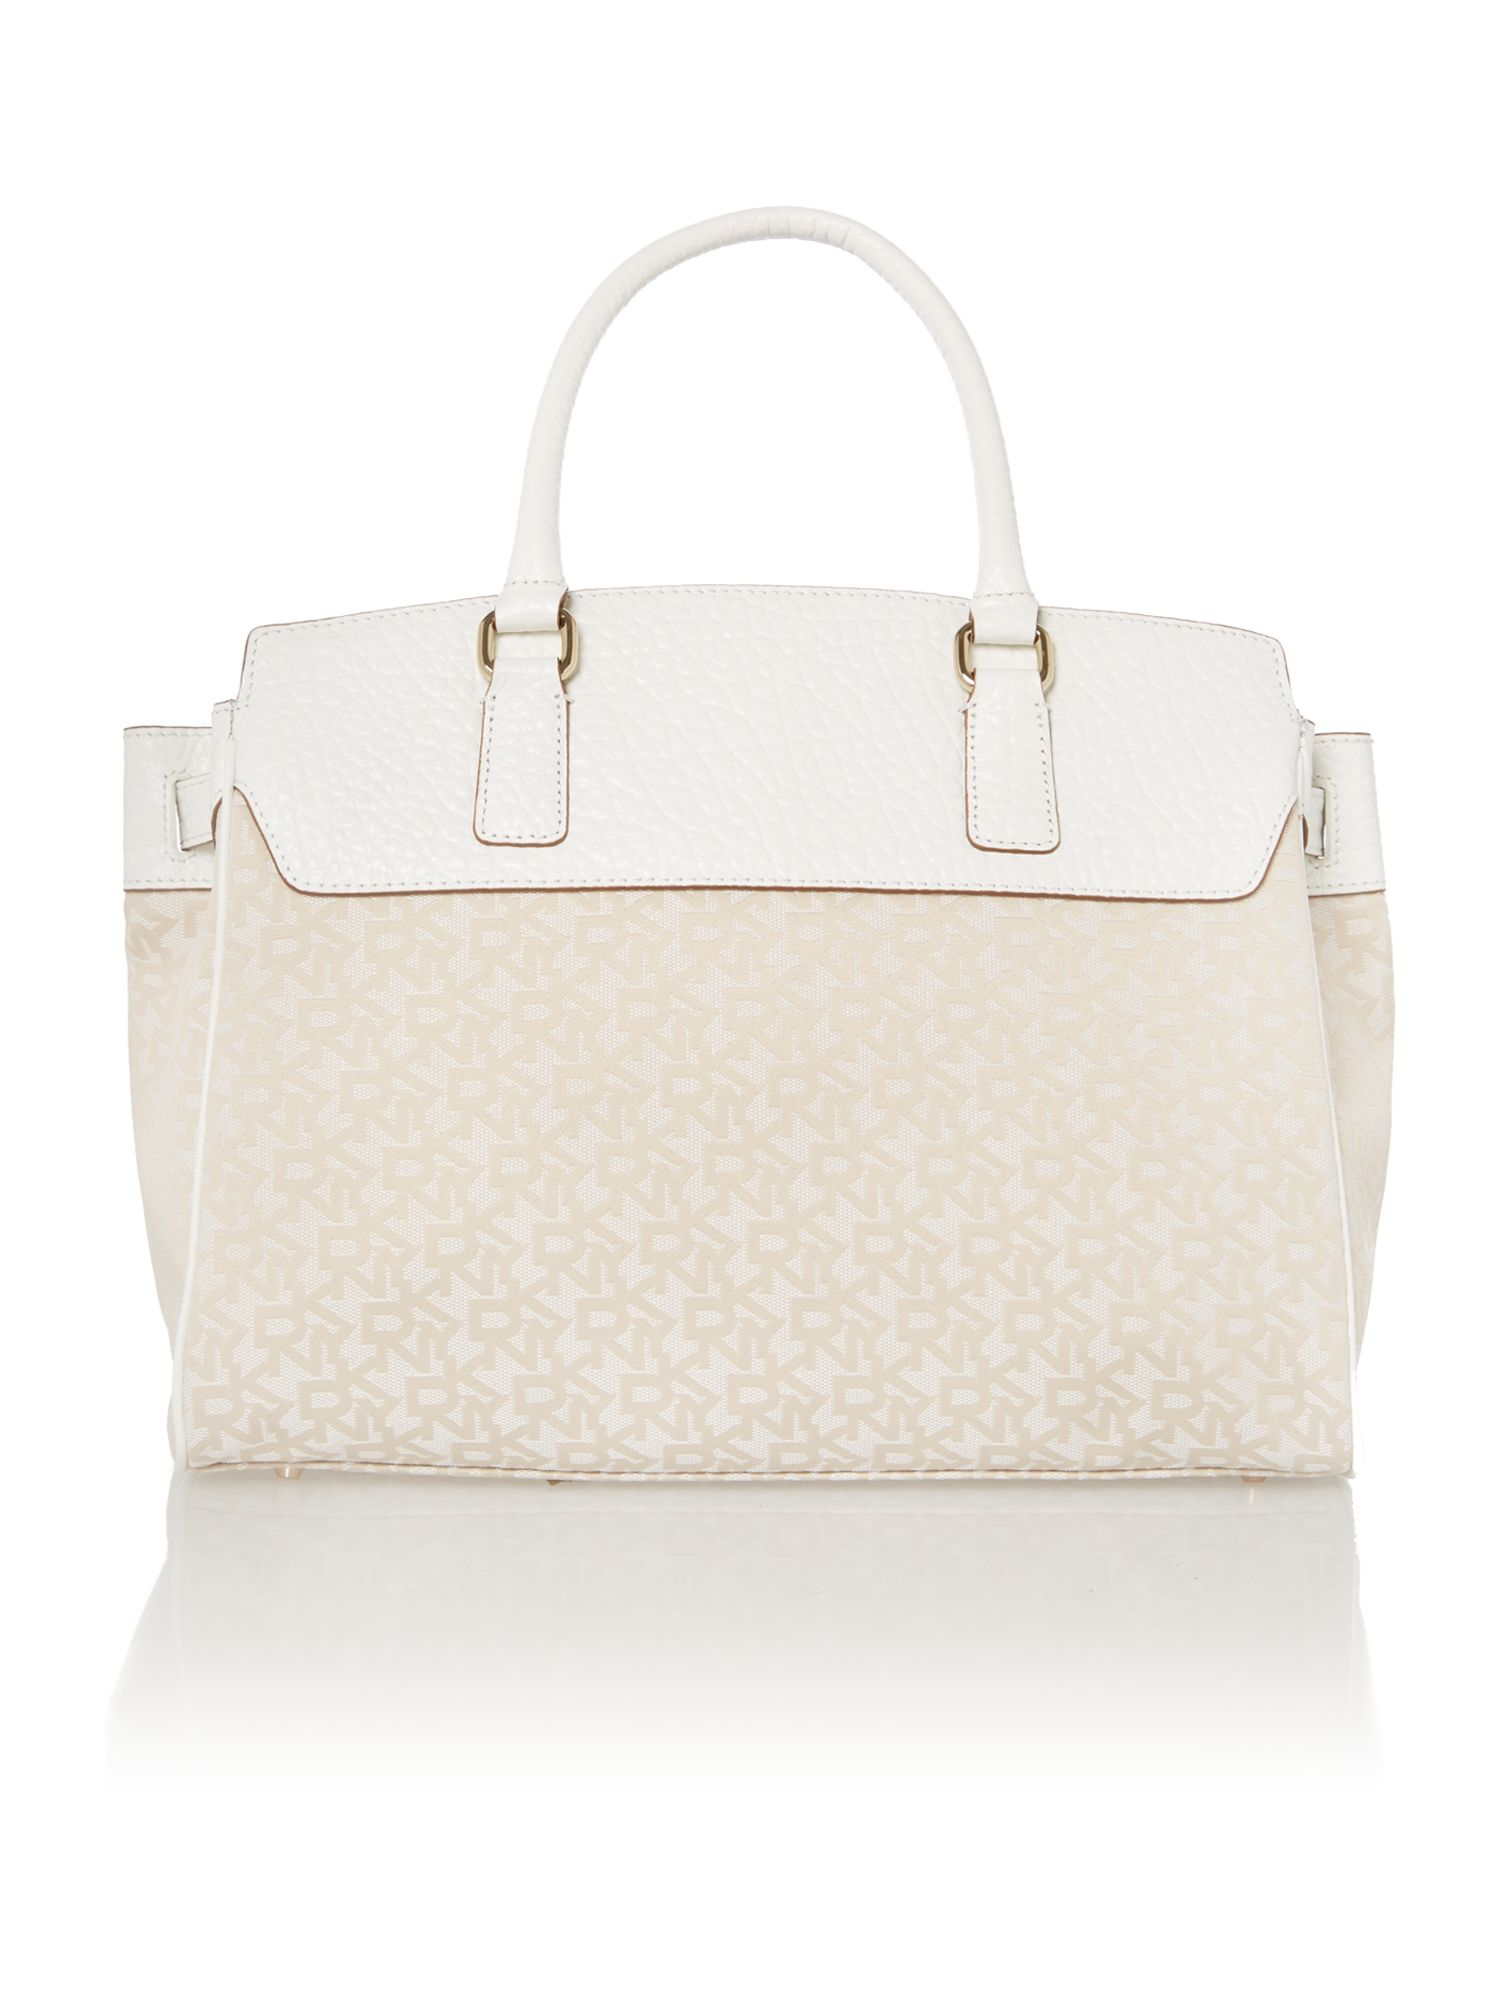 French grain white tote bag